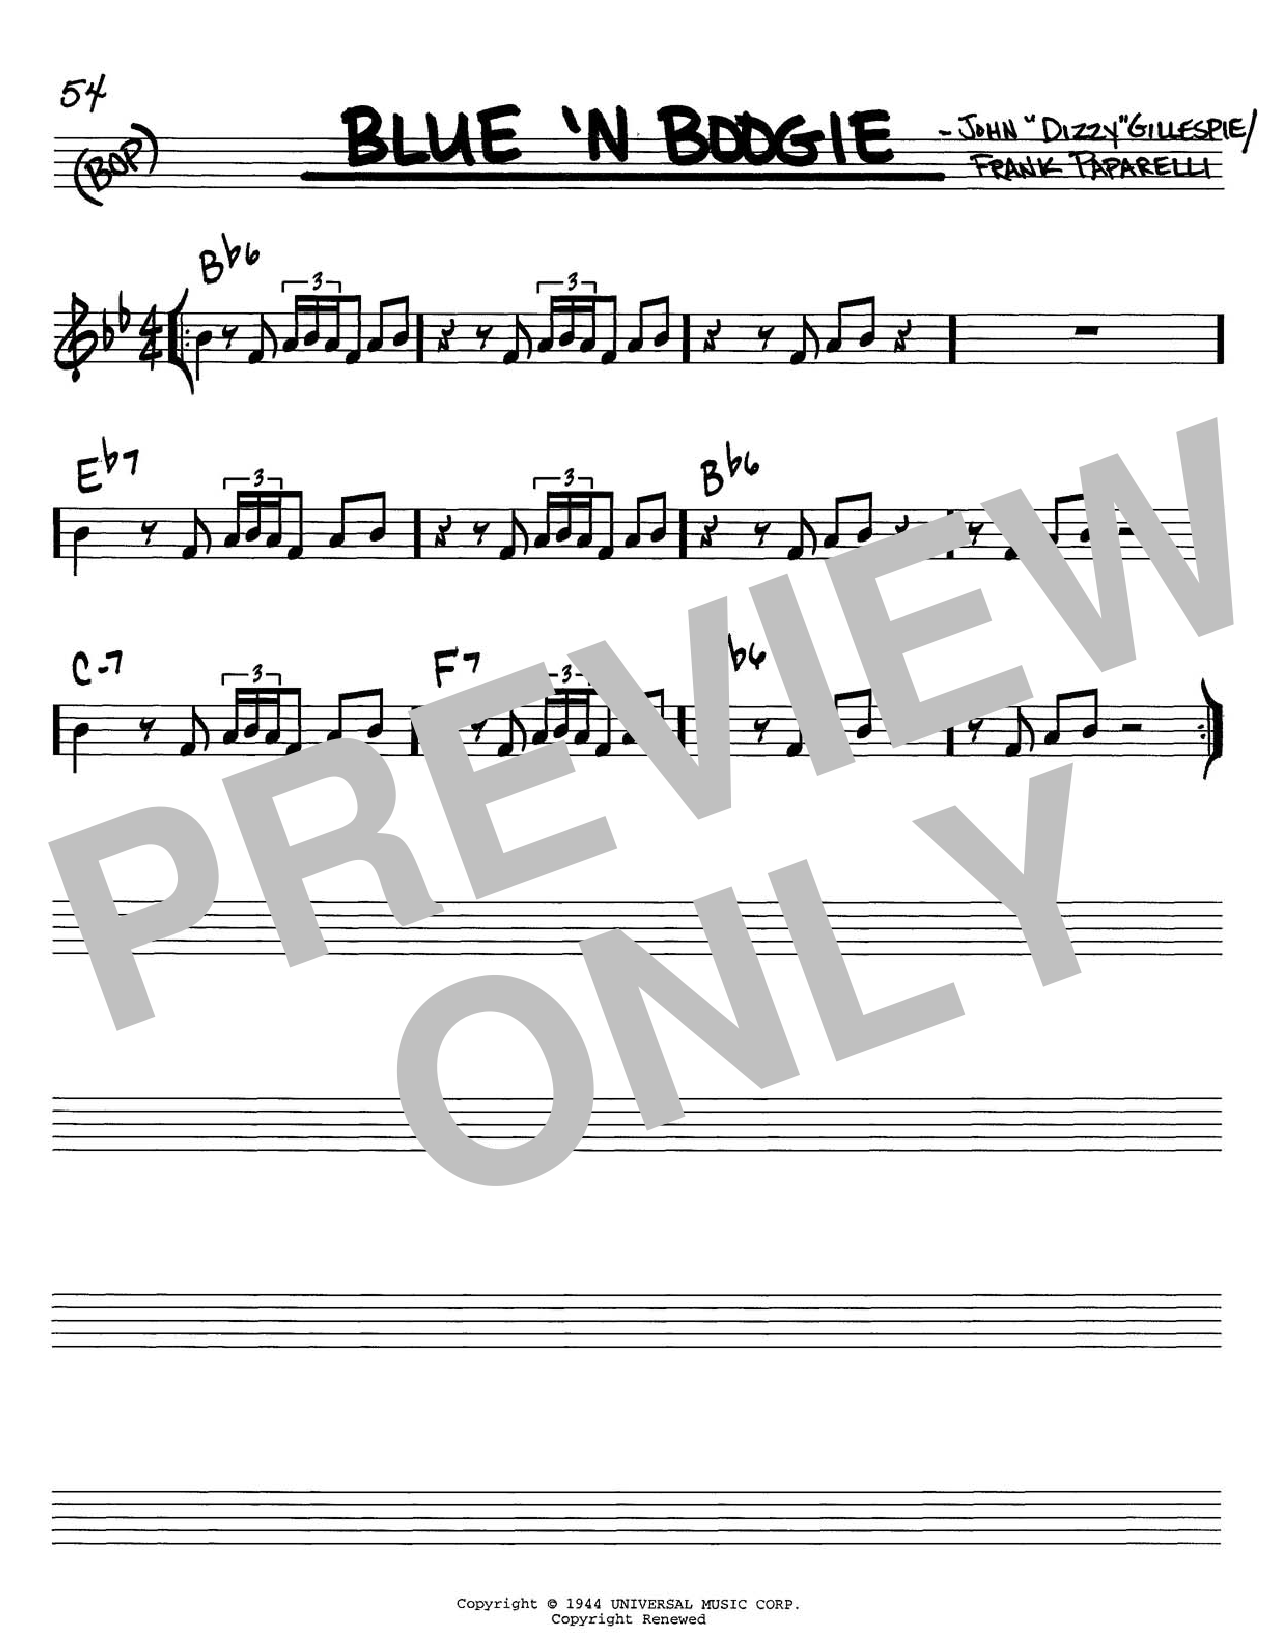 Dizzy Gillespie Blue 'N Boogie sheet music notes and chords. Download Printable PDF.